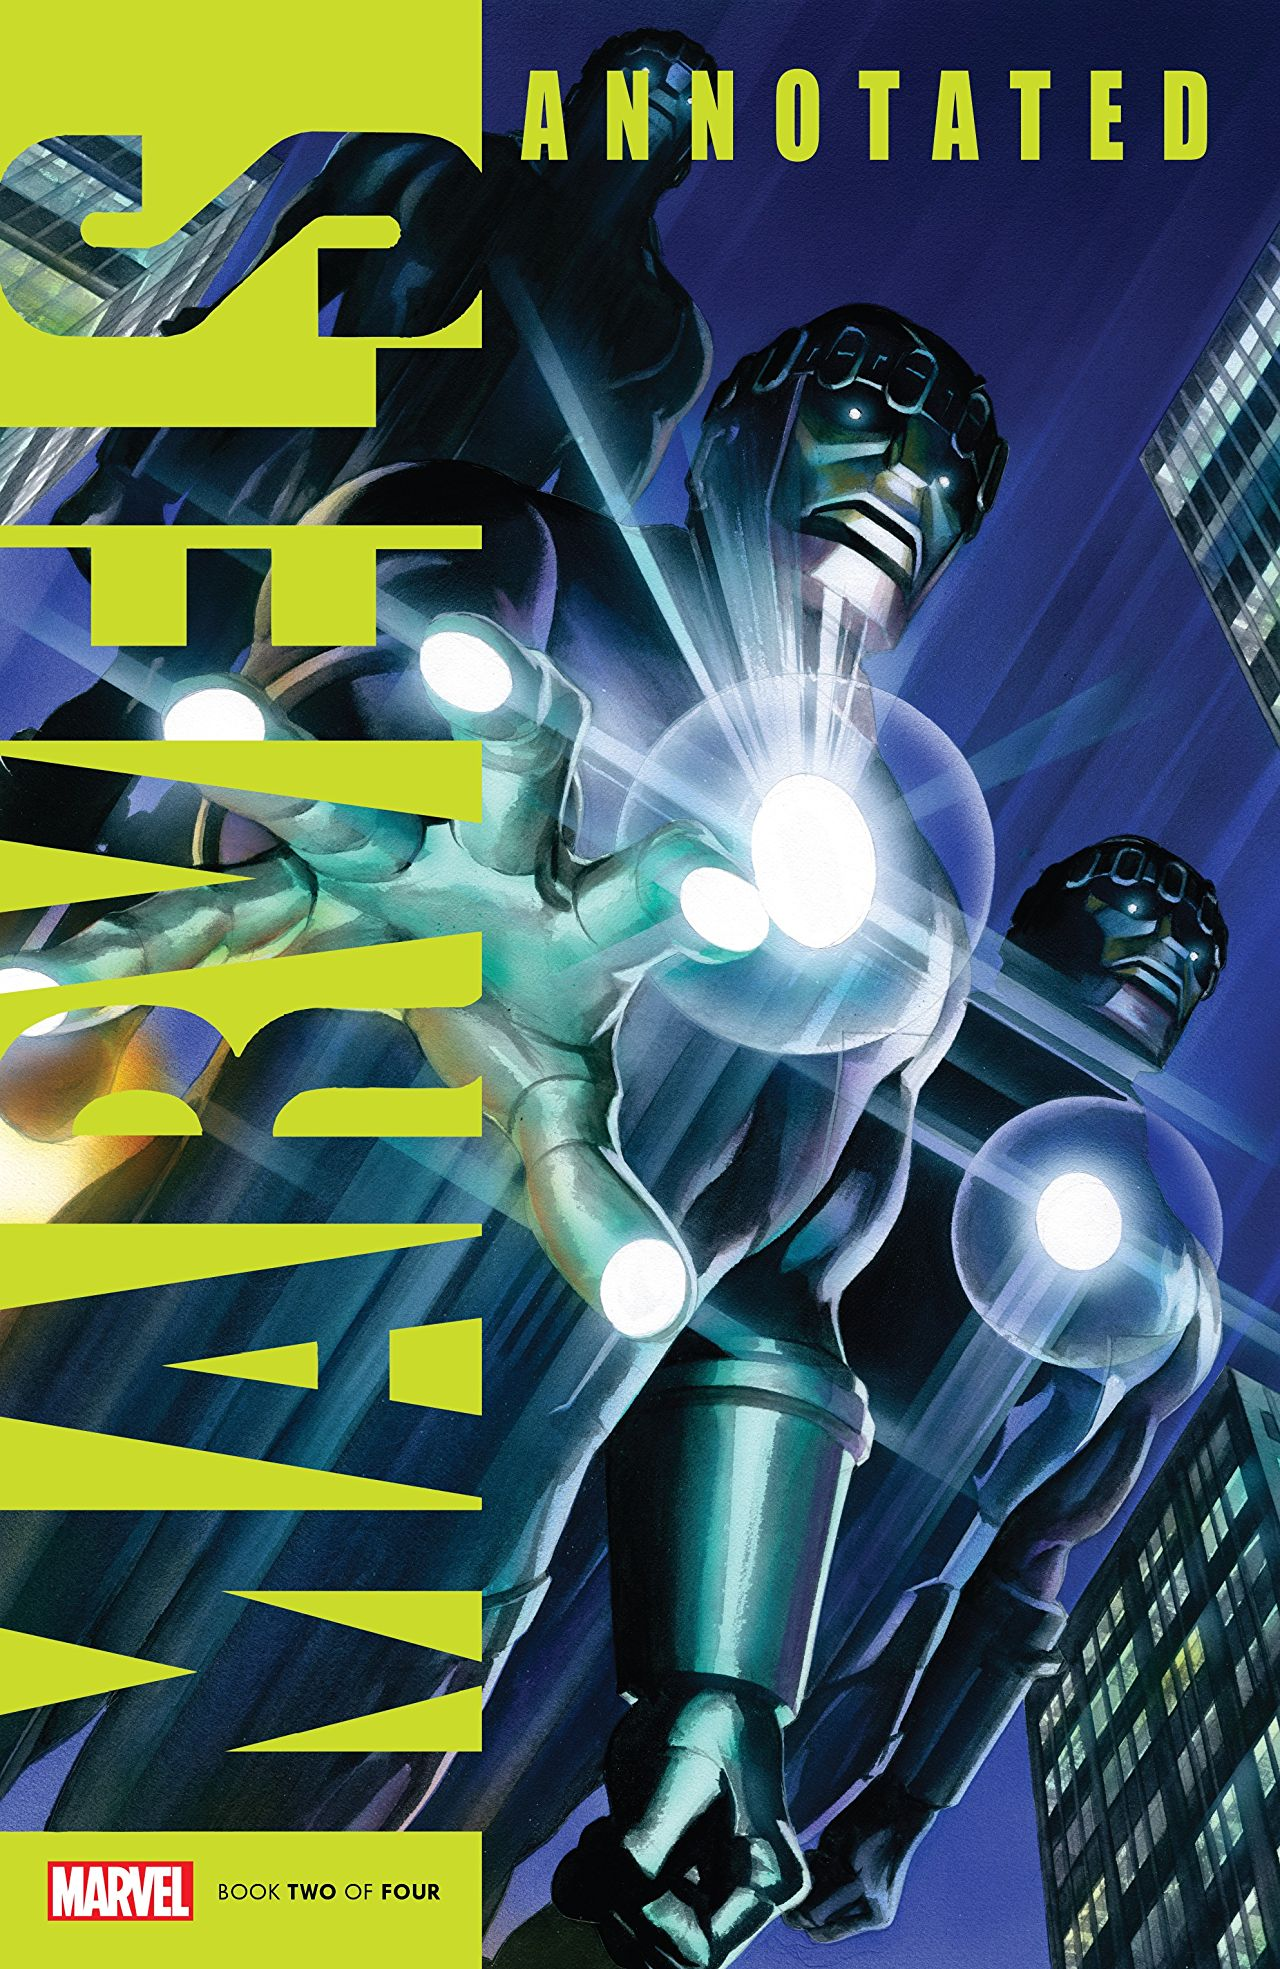 Marvels Annotated Vol 1 2